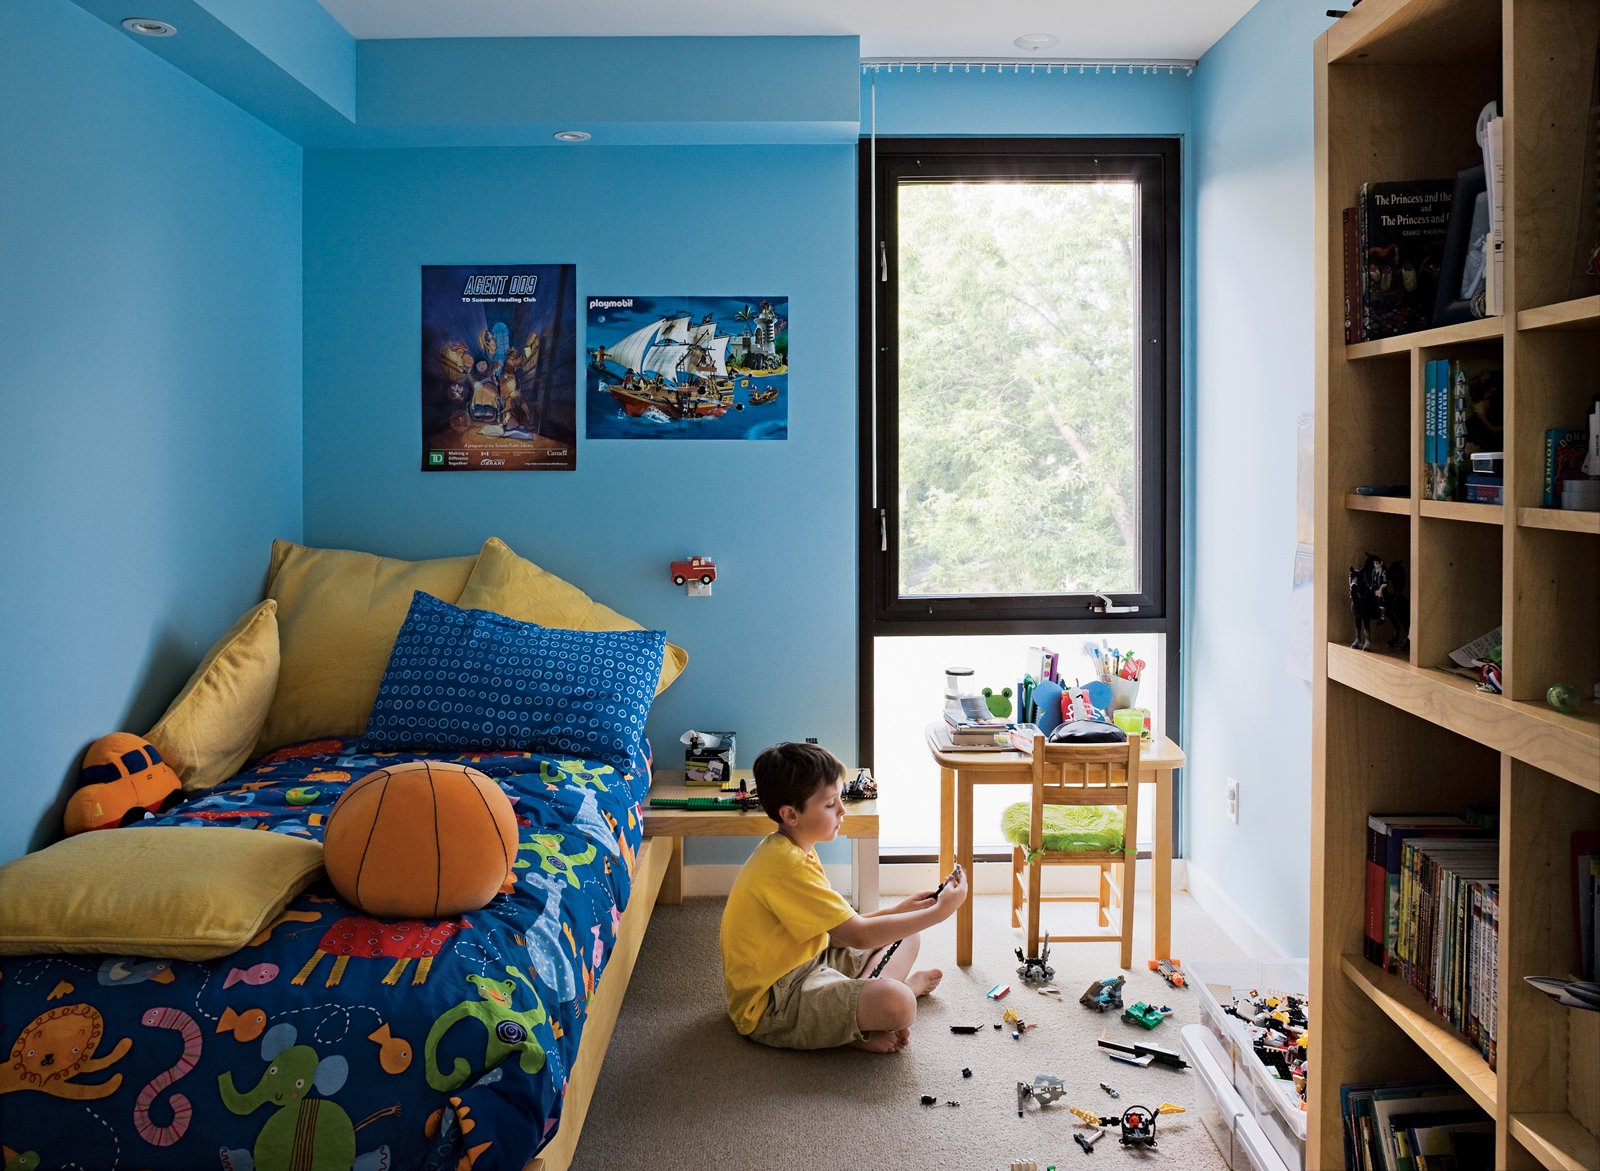 Kids, Bedroom, Boy, Pre-Teen, Desk, Bed, Night Stands, Chair, Carpet, Shelves, and Storage Griffin's room, which is exactly the same size as his brother's, gets good light from the backyard.  Kids Storage Bedroom Shelves Carpet Photos from Narrow Modernist Three-Story Home in Toronto